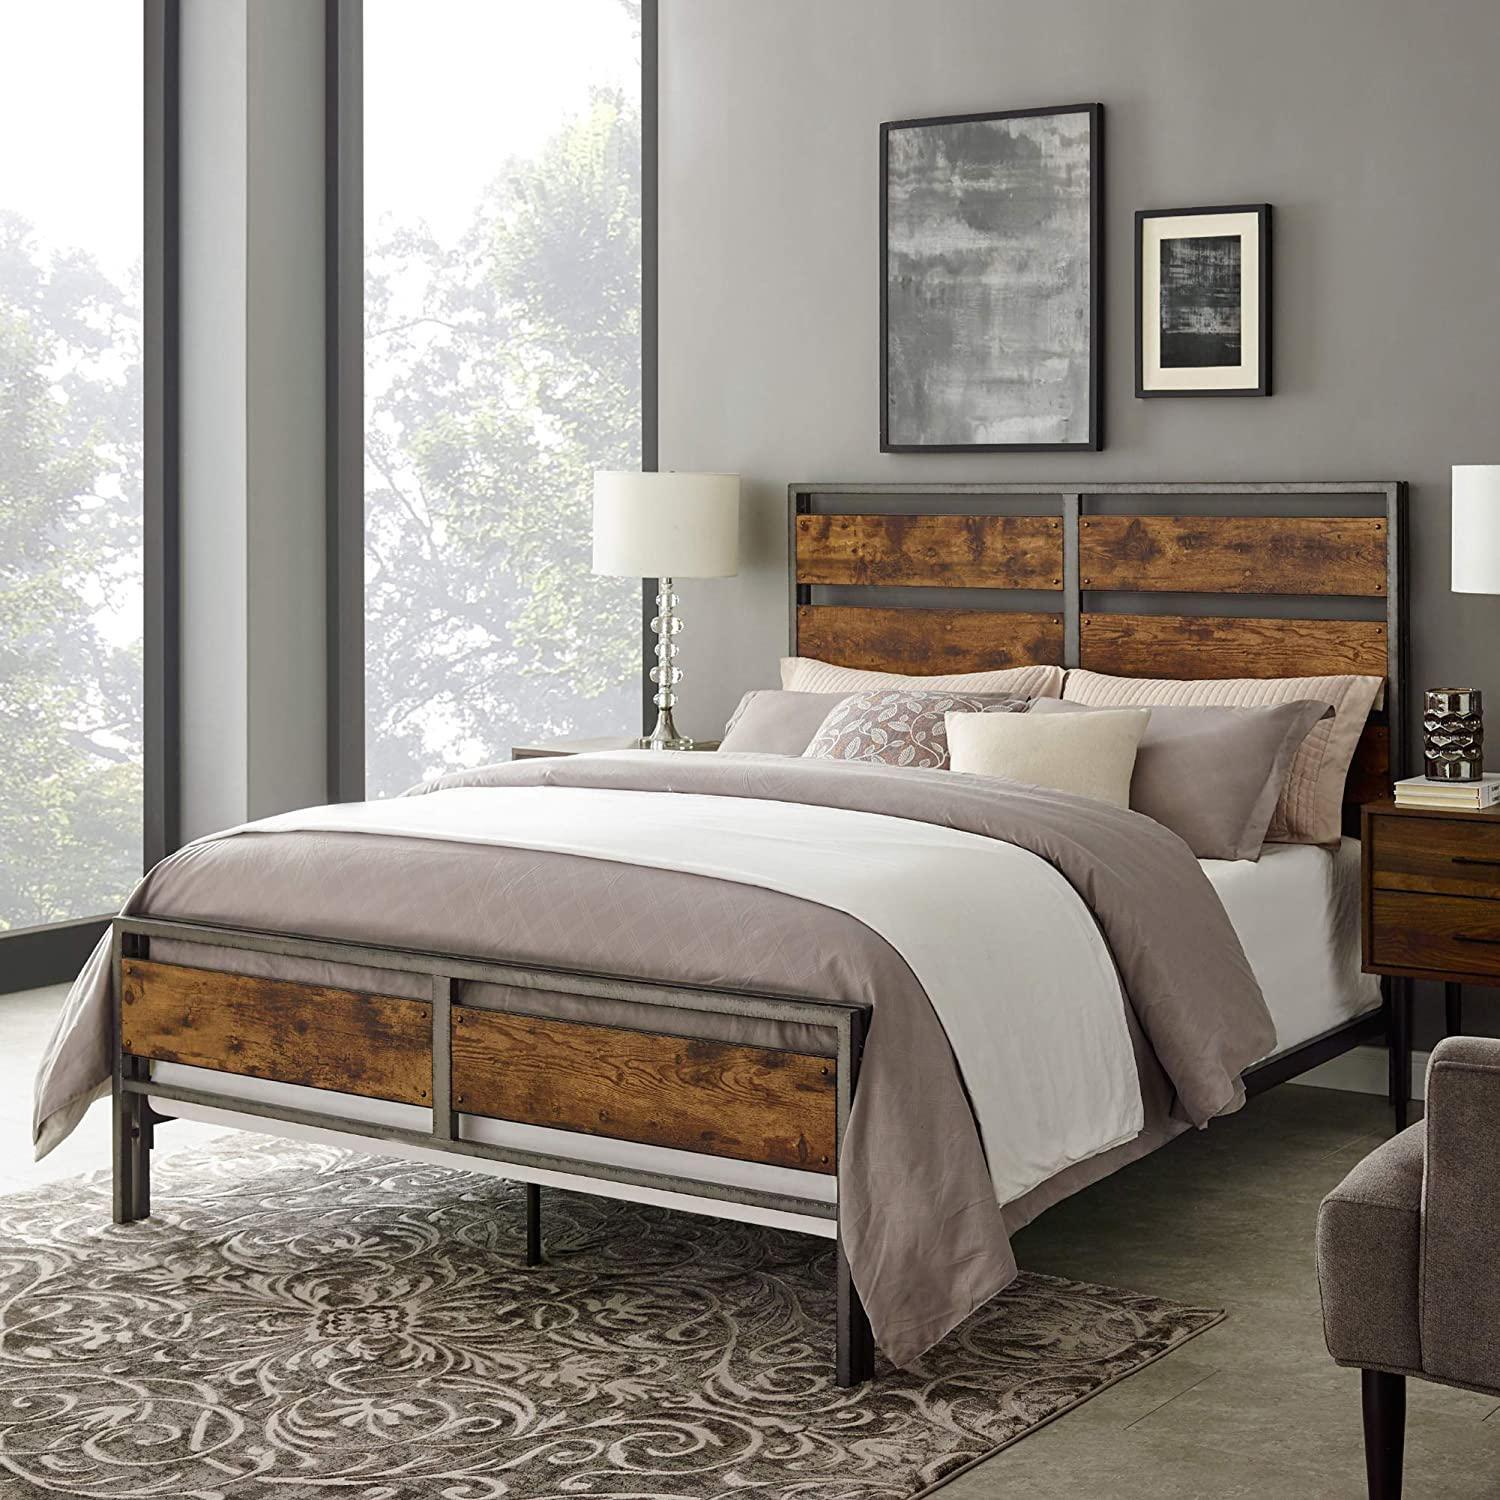 Enjoy fast, free nationwide shipping!  Owned by a husband and wife team of high-school music teachers, HawkinsWoodshop.com is your one stop shop for affordable furniture.  Shop HawkinsWoodshop.com for solid wood & metal modern, traditional, contemporary, industrial, custom, rustic, and farmhouse furniture including our Reclaimed Wood Queen Size Bed Frame.